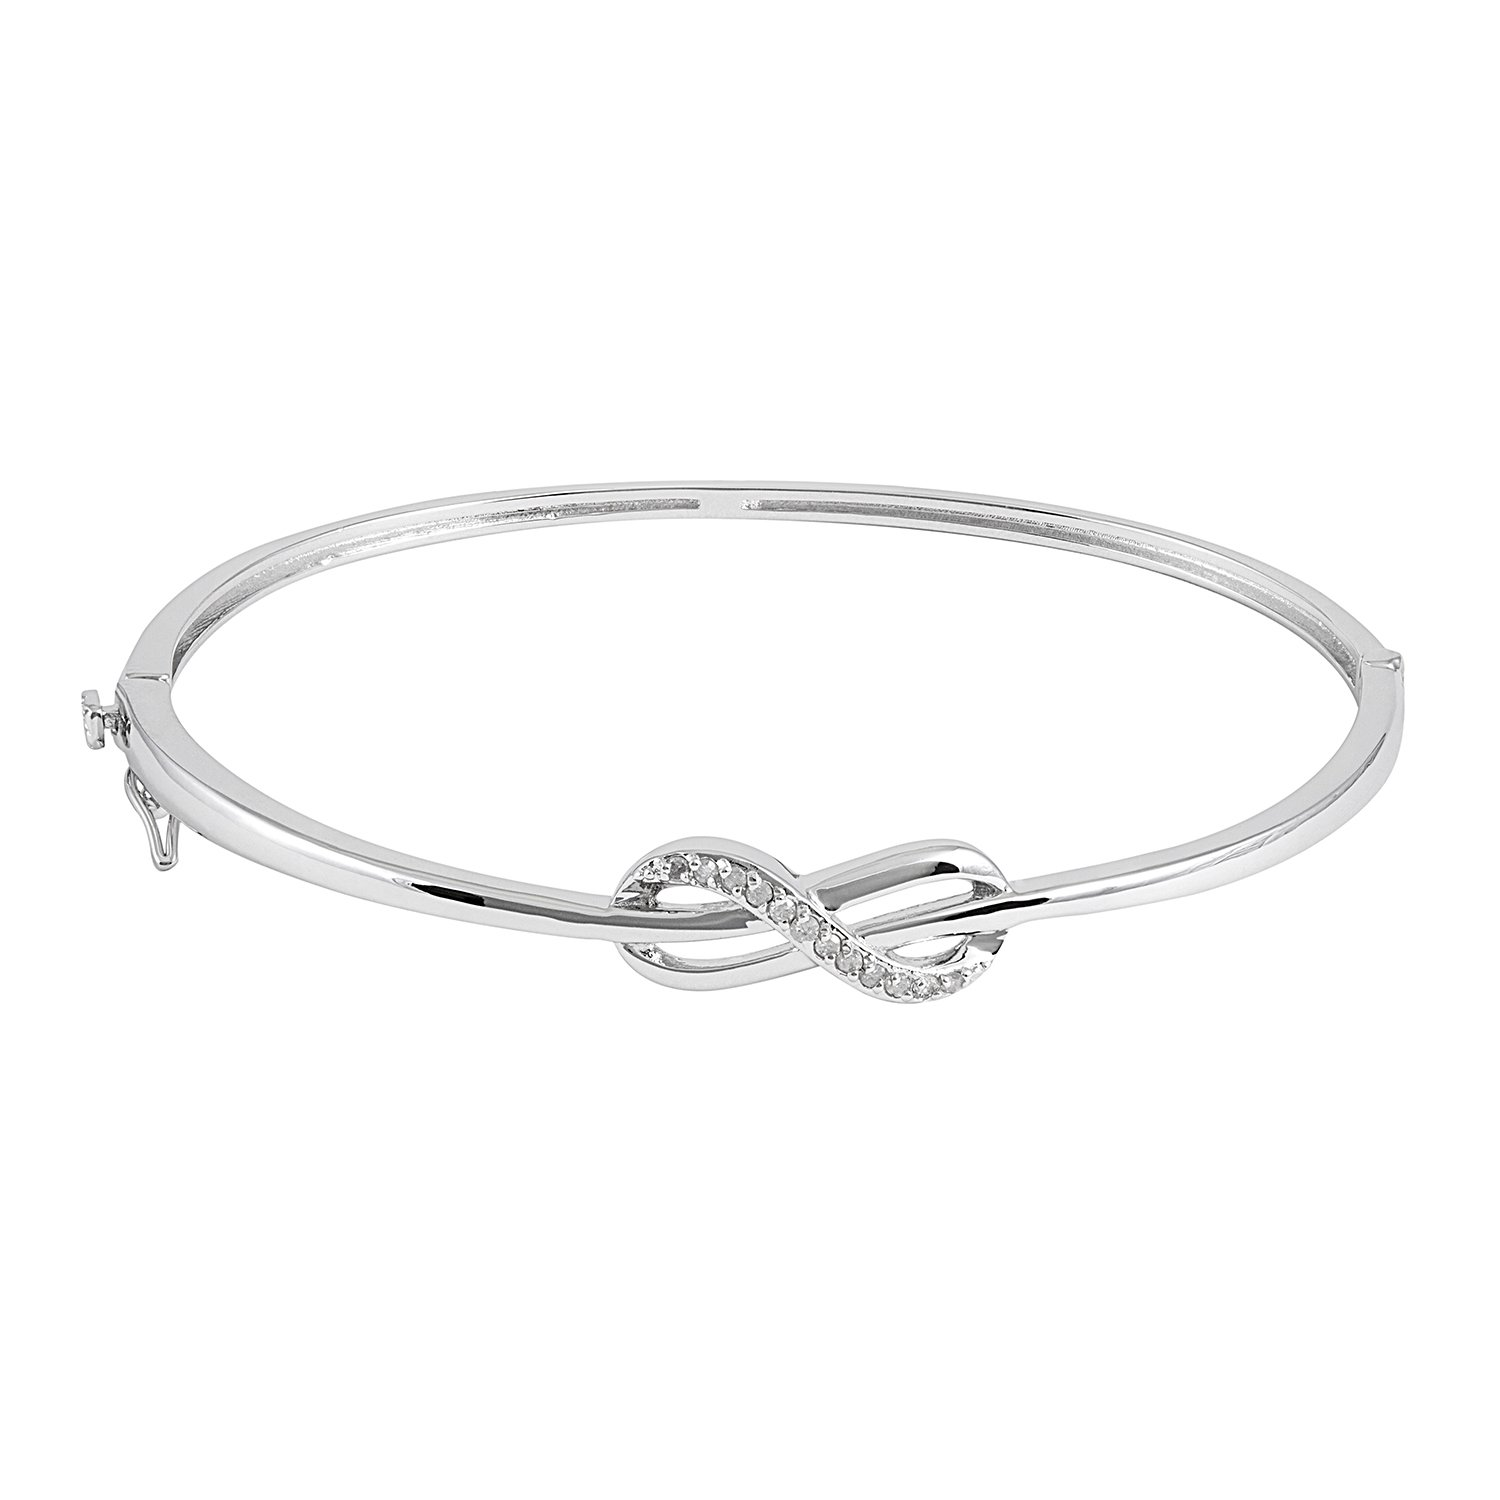 JewelExclusive Sterling Silver 1/10cttw Natural Round-Cut (J-K Color, I2-I3 Clarity) Infinity Knot Bangle Bracelet